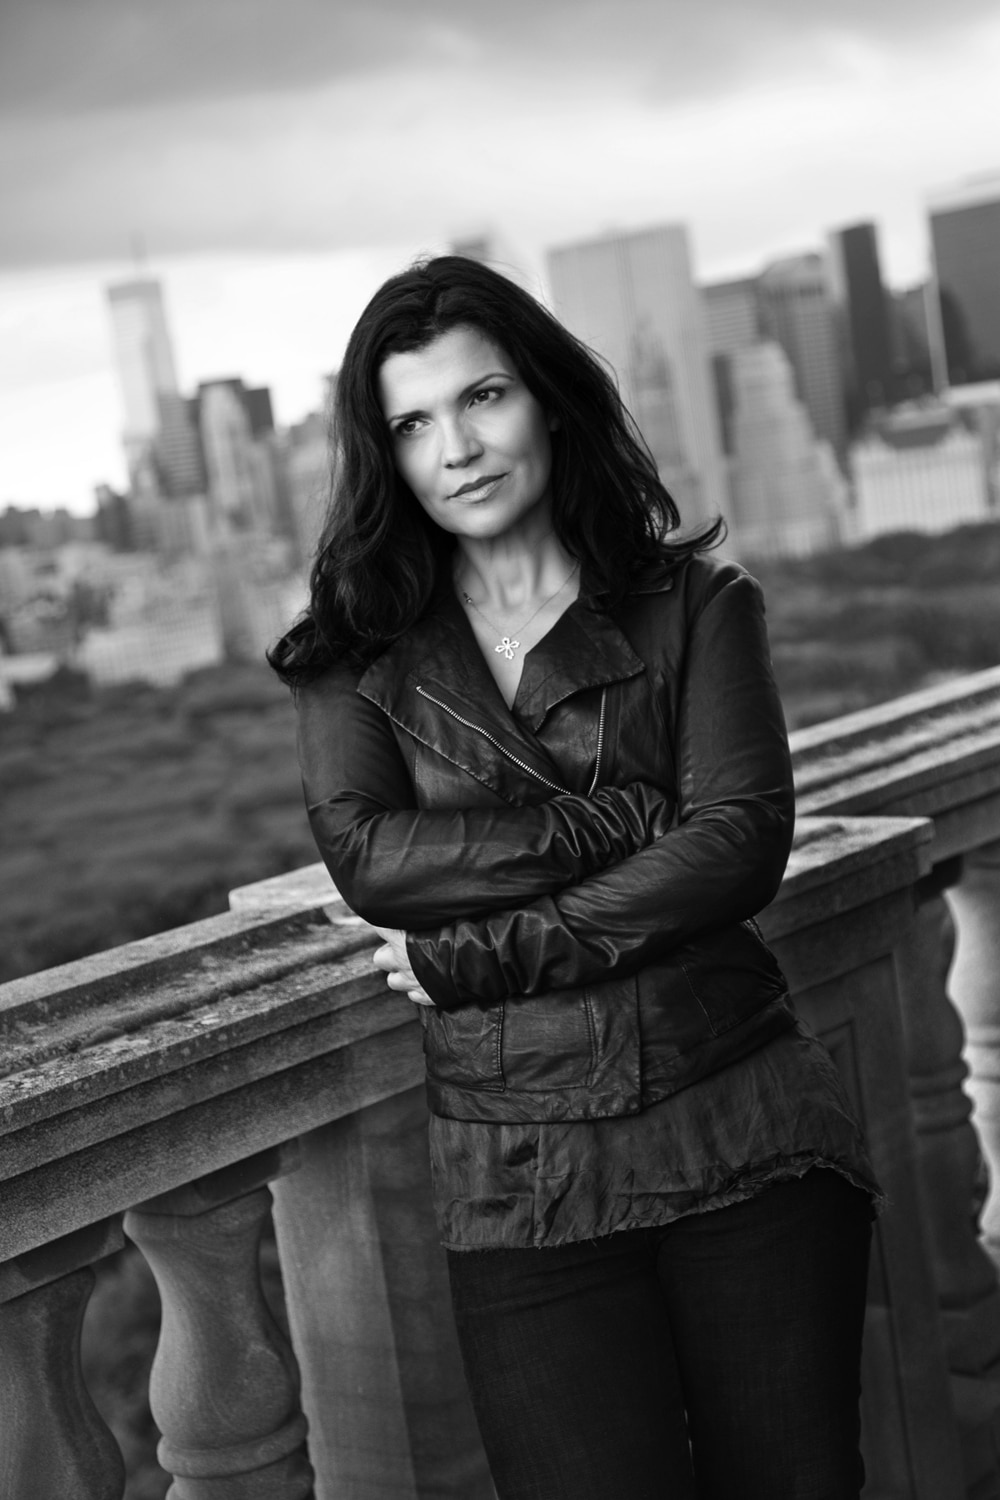 Ali Hewson PHOTOGRAPHED BY BARRY MCCALL FOR PHO20GRAPHY